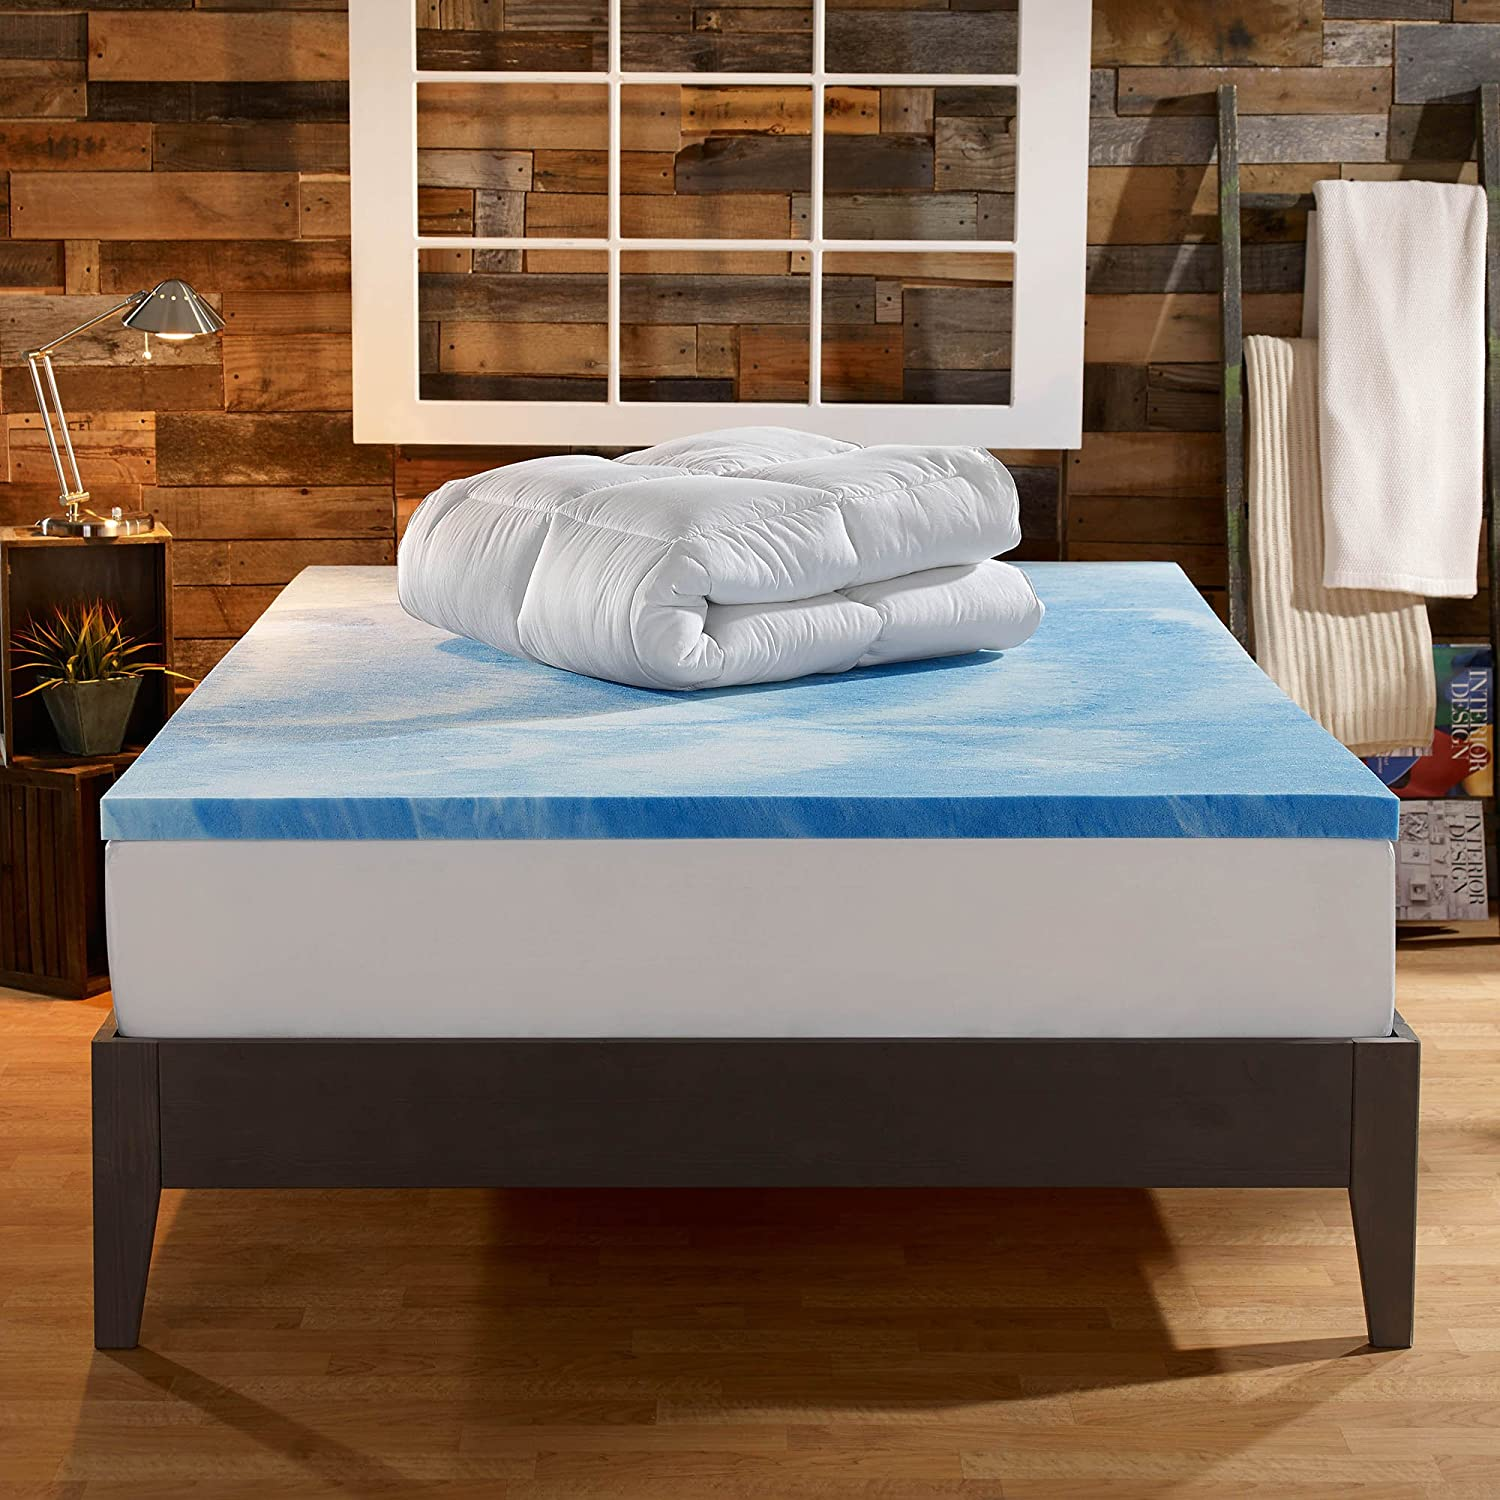 Sleep Innovations 4 Inch Dual Layer Mattress Topper